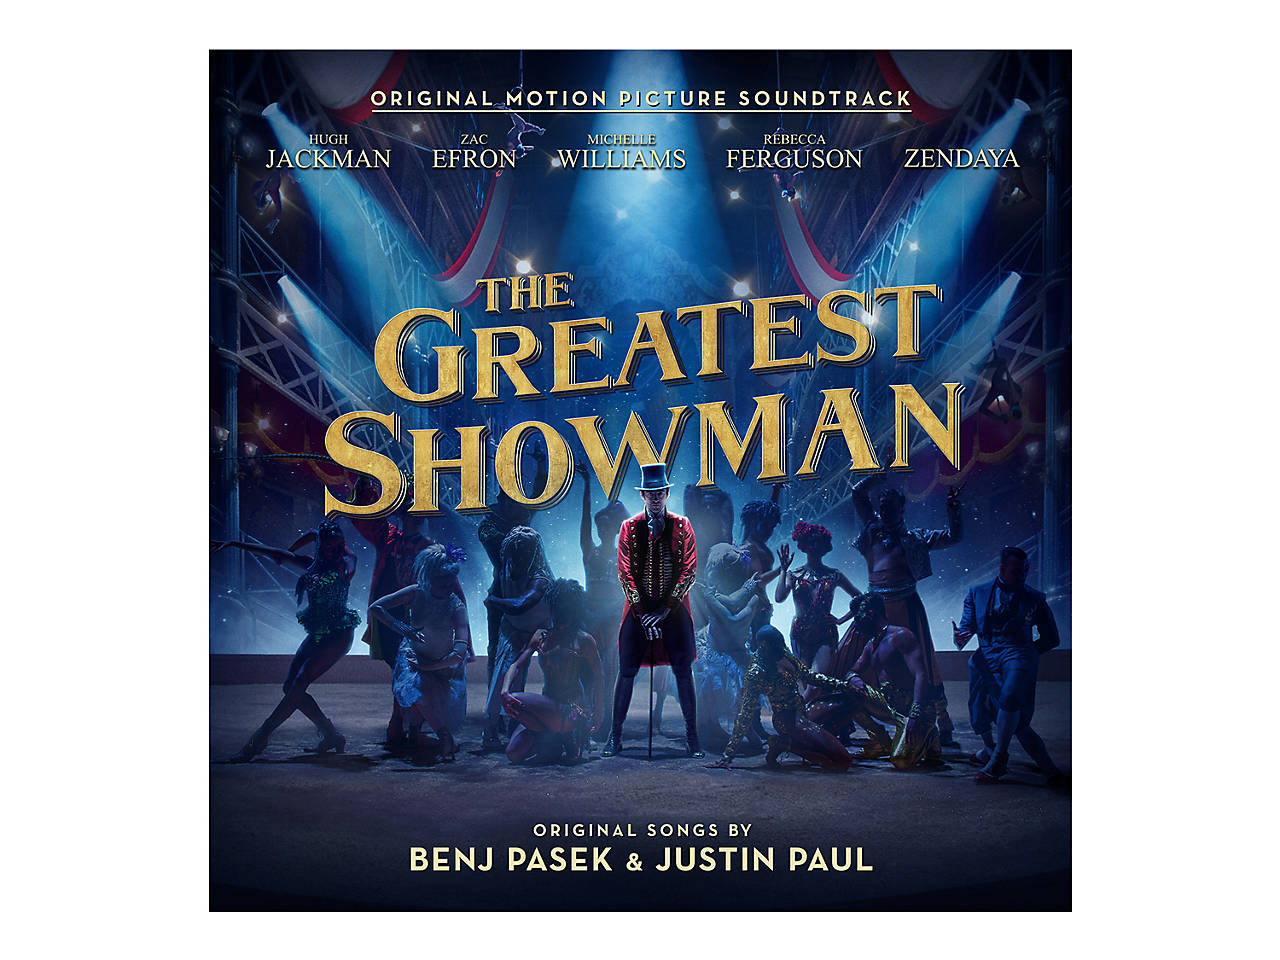 Original Motion Picture Soundtrack The Greatest Showman